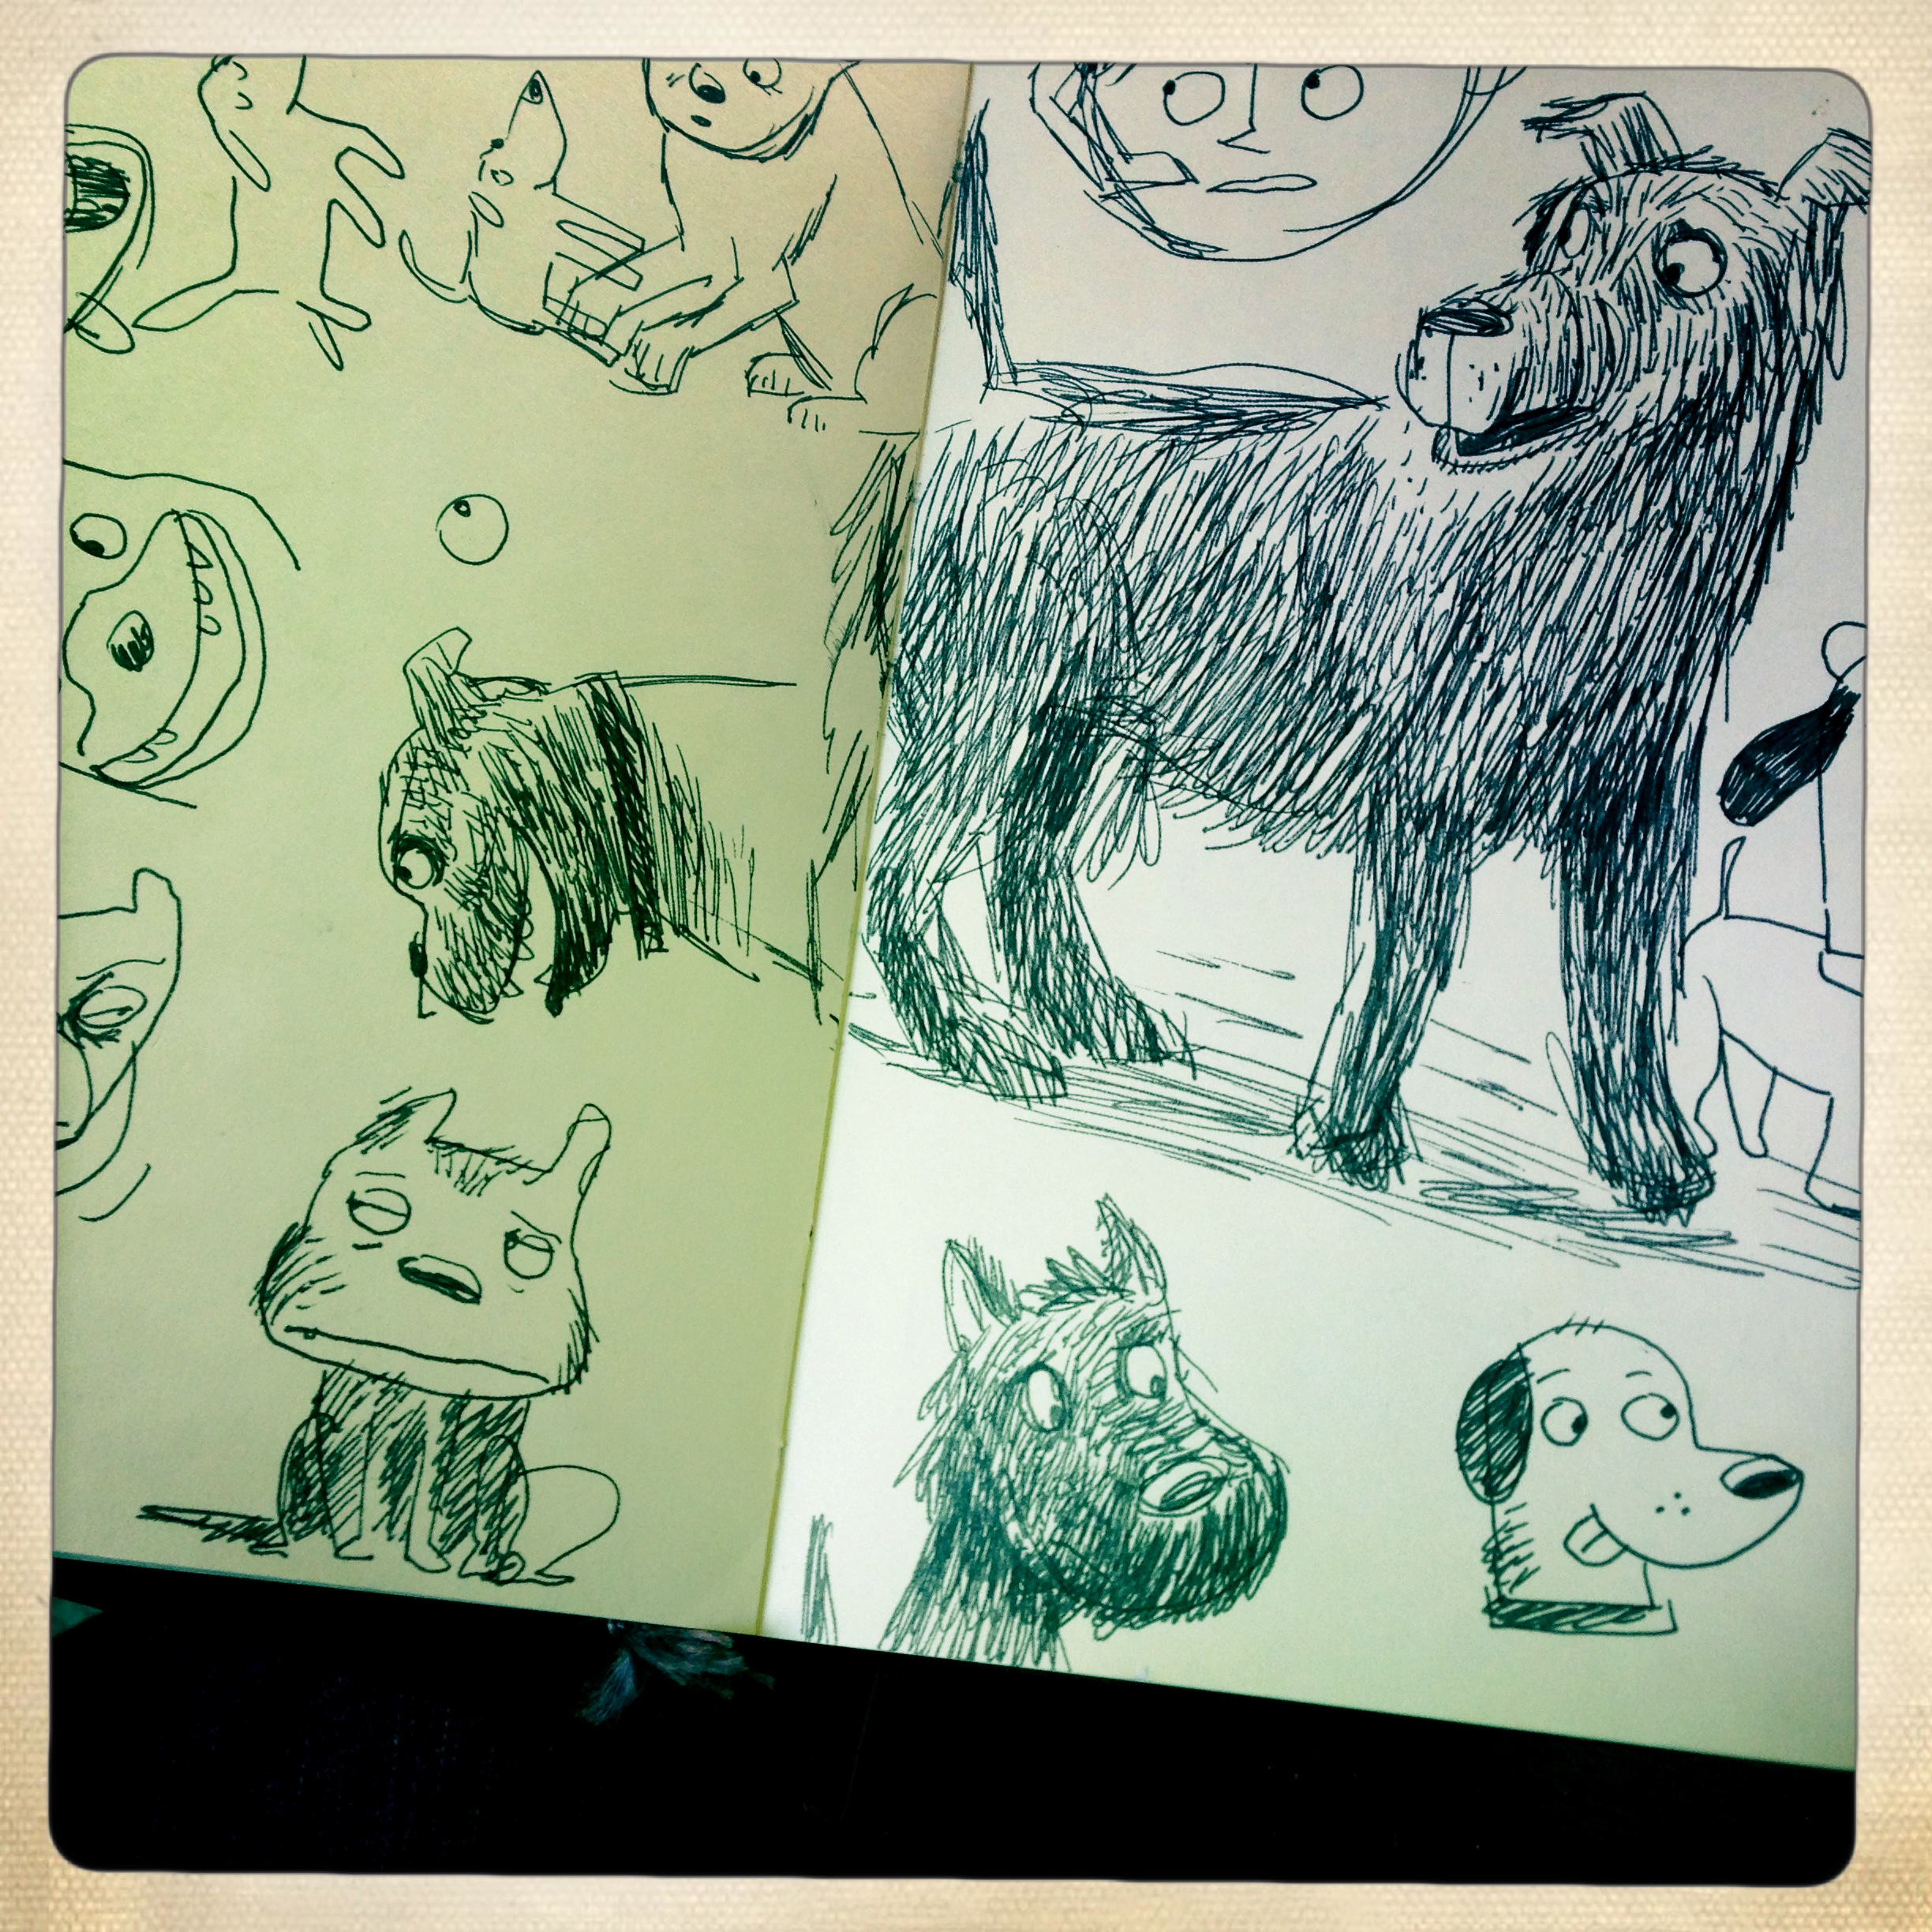 Coming up with just the right dog character design was v. important—even though he doesn't have any lines, he had to be the moral center of the story and therefore capable of lots of emotion and immediately likable.